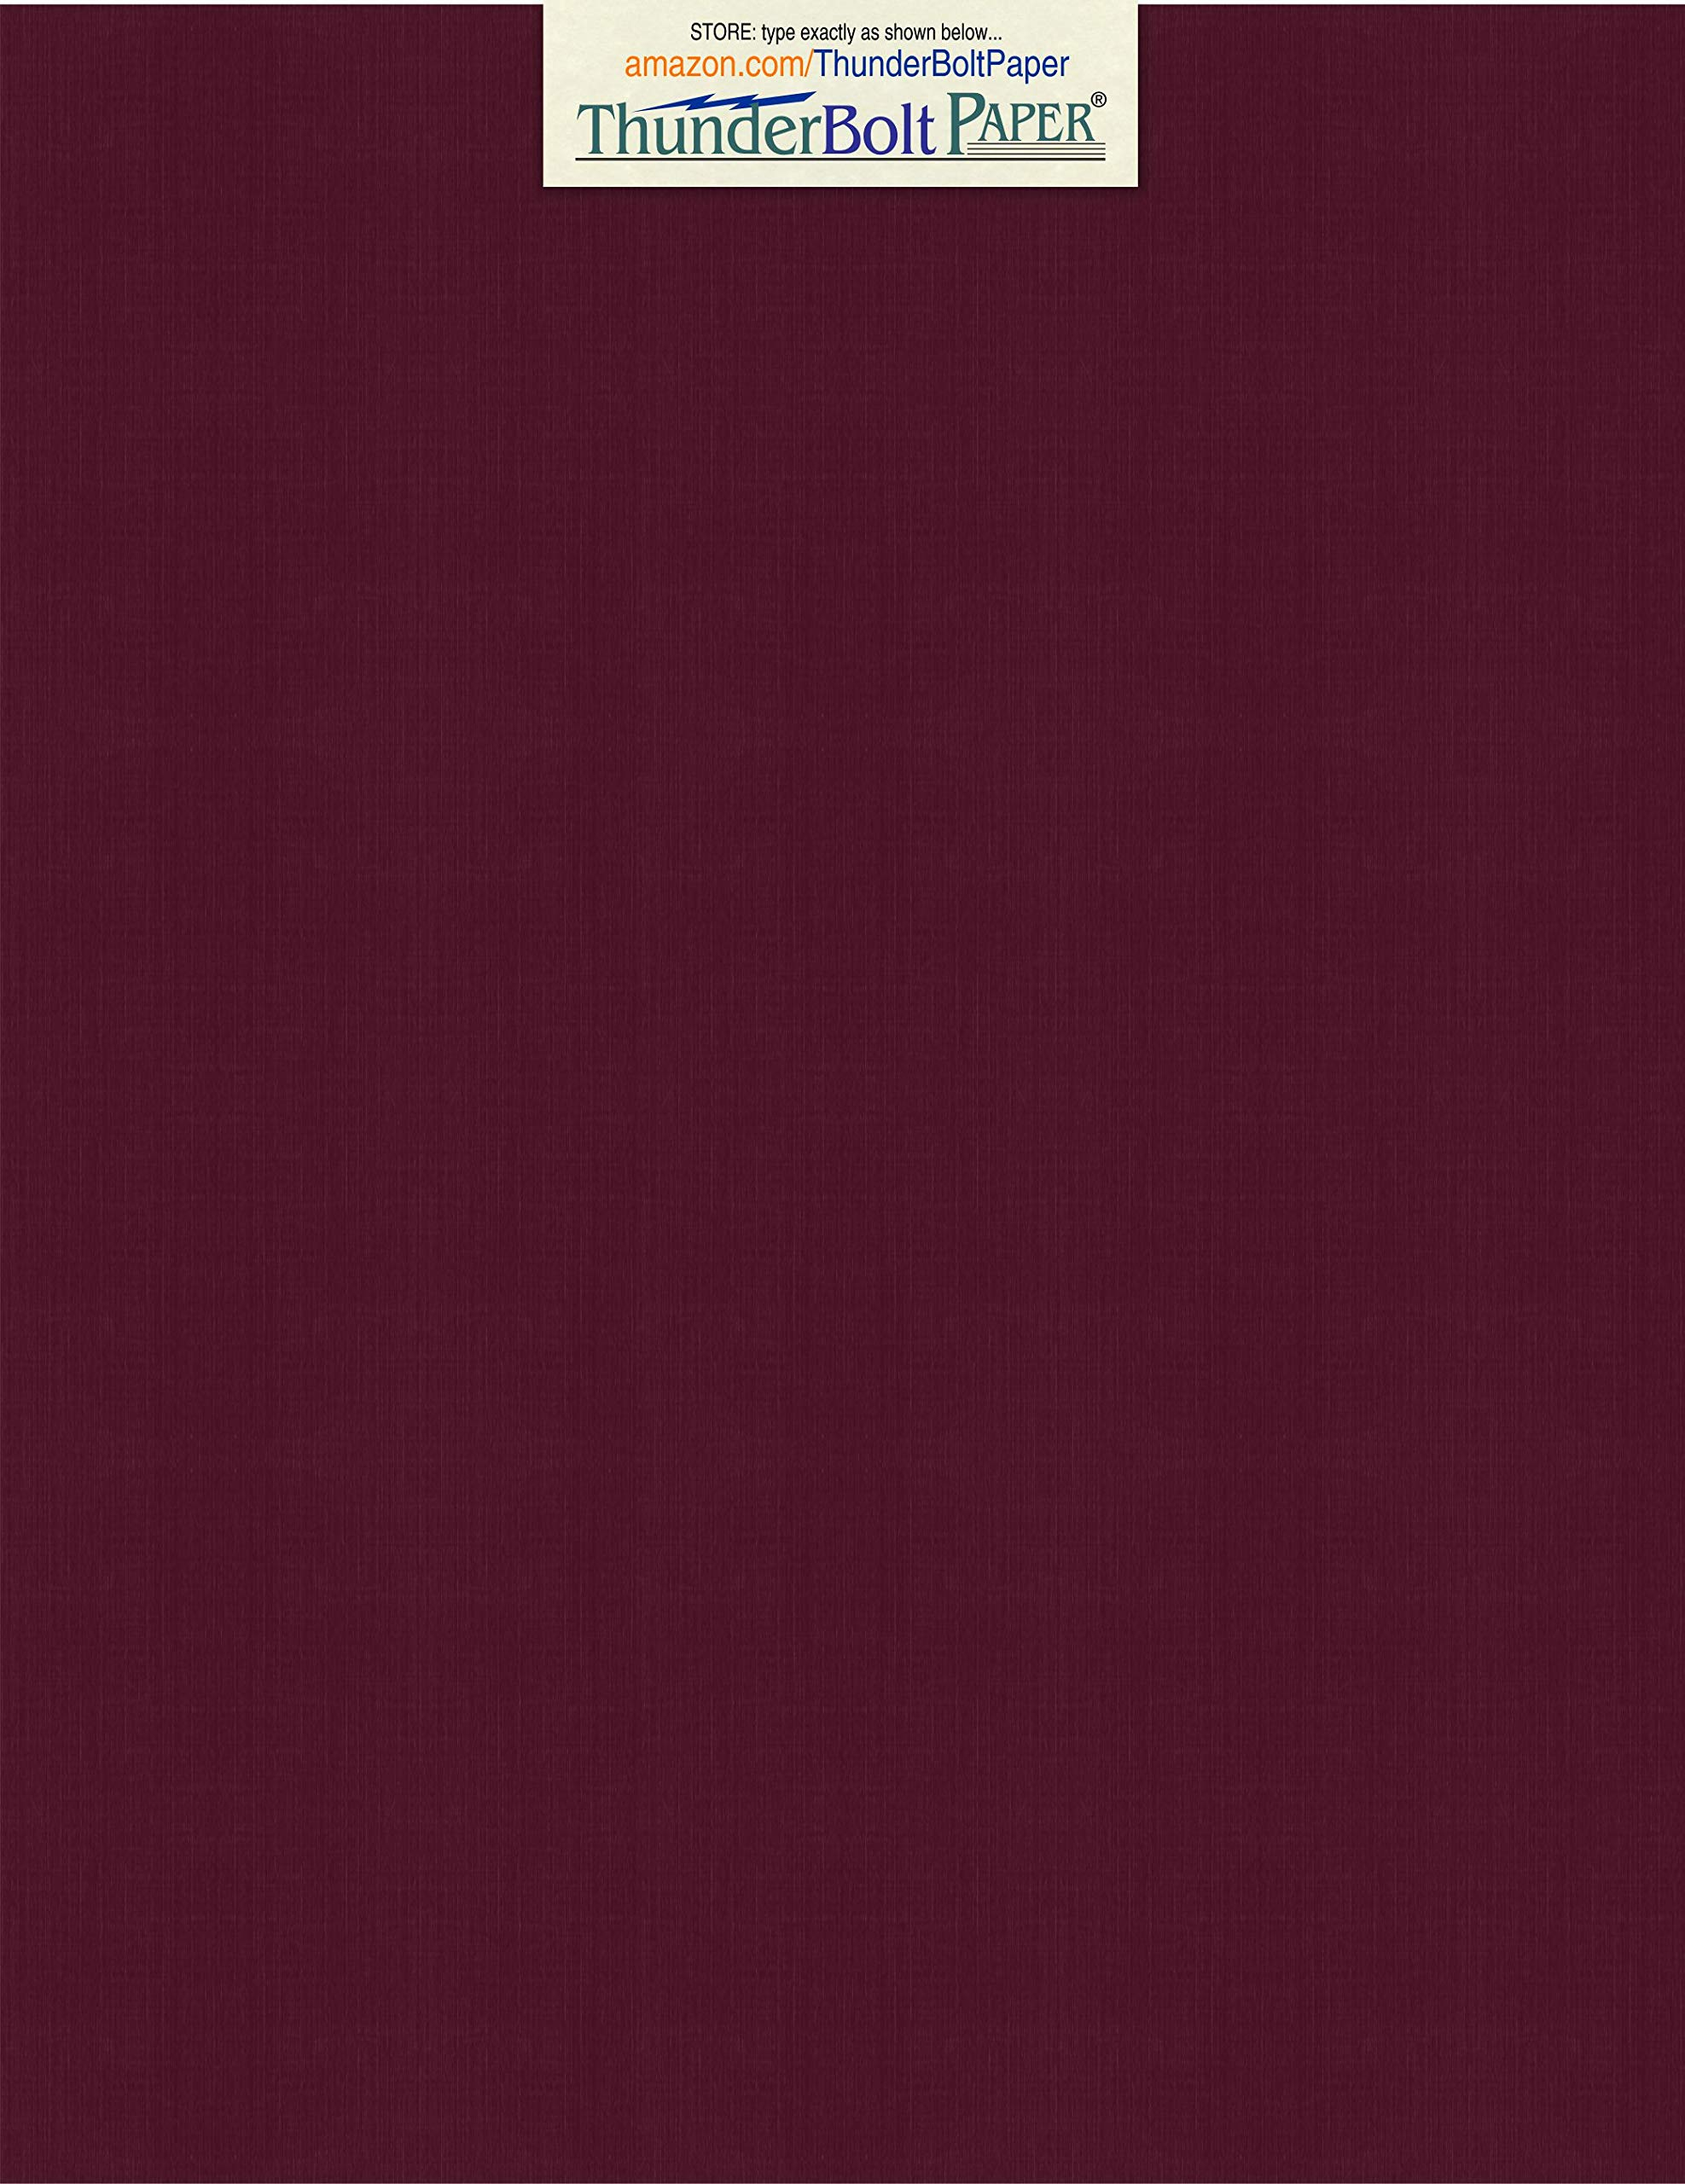 50 Dark Burgundy Linen 80# Cover Paper Sheets - 8.5'' X 11'' (8.5X11 Inches) Standard Letter|Flyer Size - 80 lb/Pound Card Weight - Fine Linen Textured Finish - Deep Dye Quality Cardstock